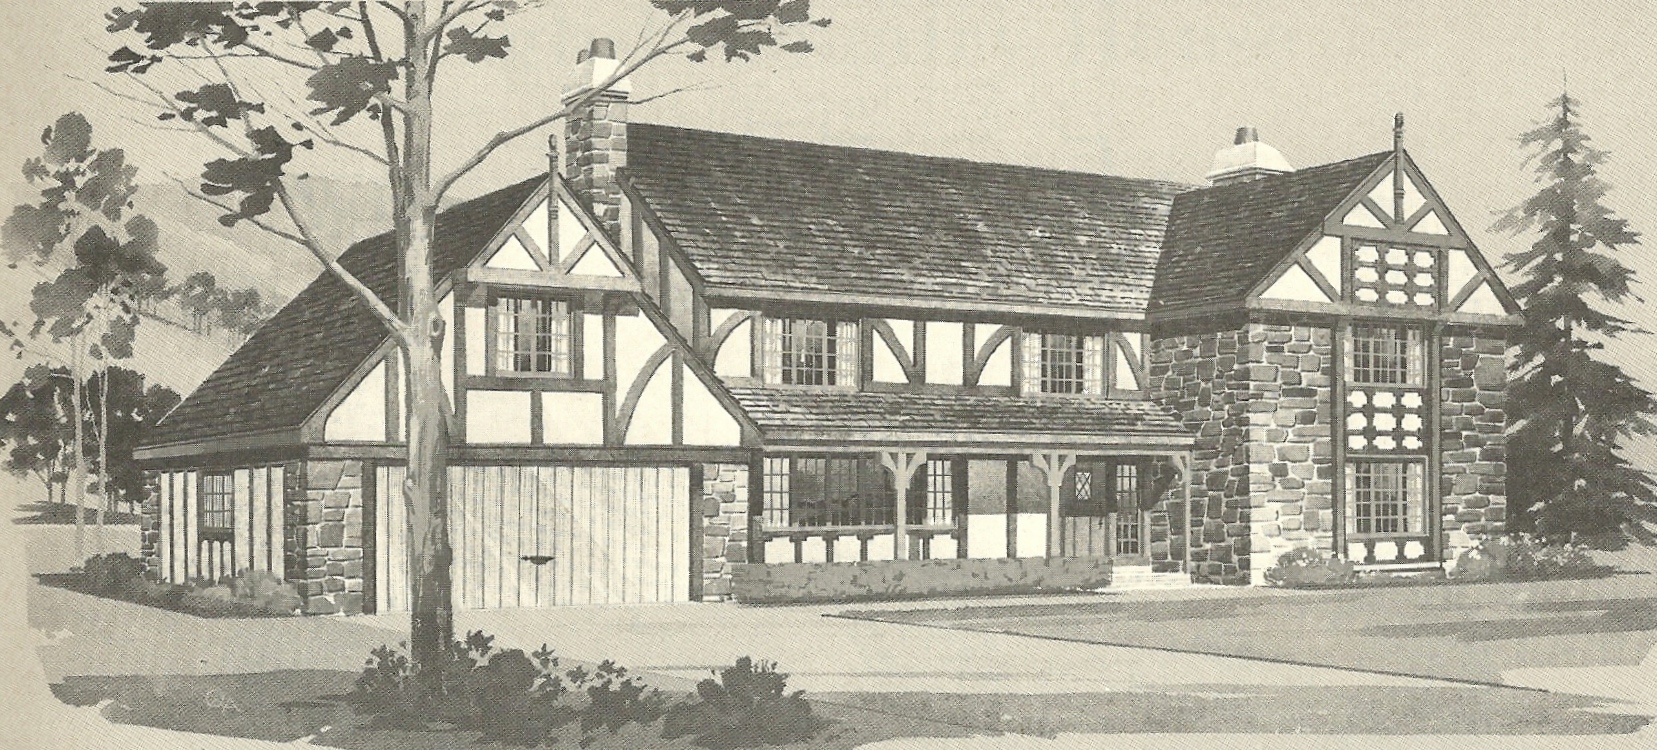 Vintage house plans 1970s english style tudor homes Houseplans com